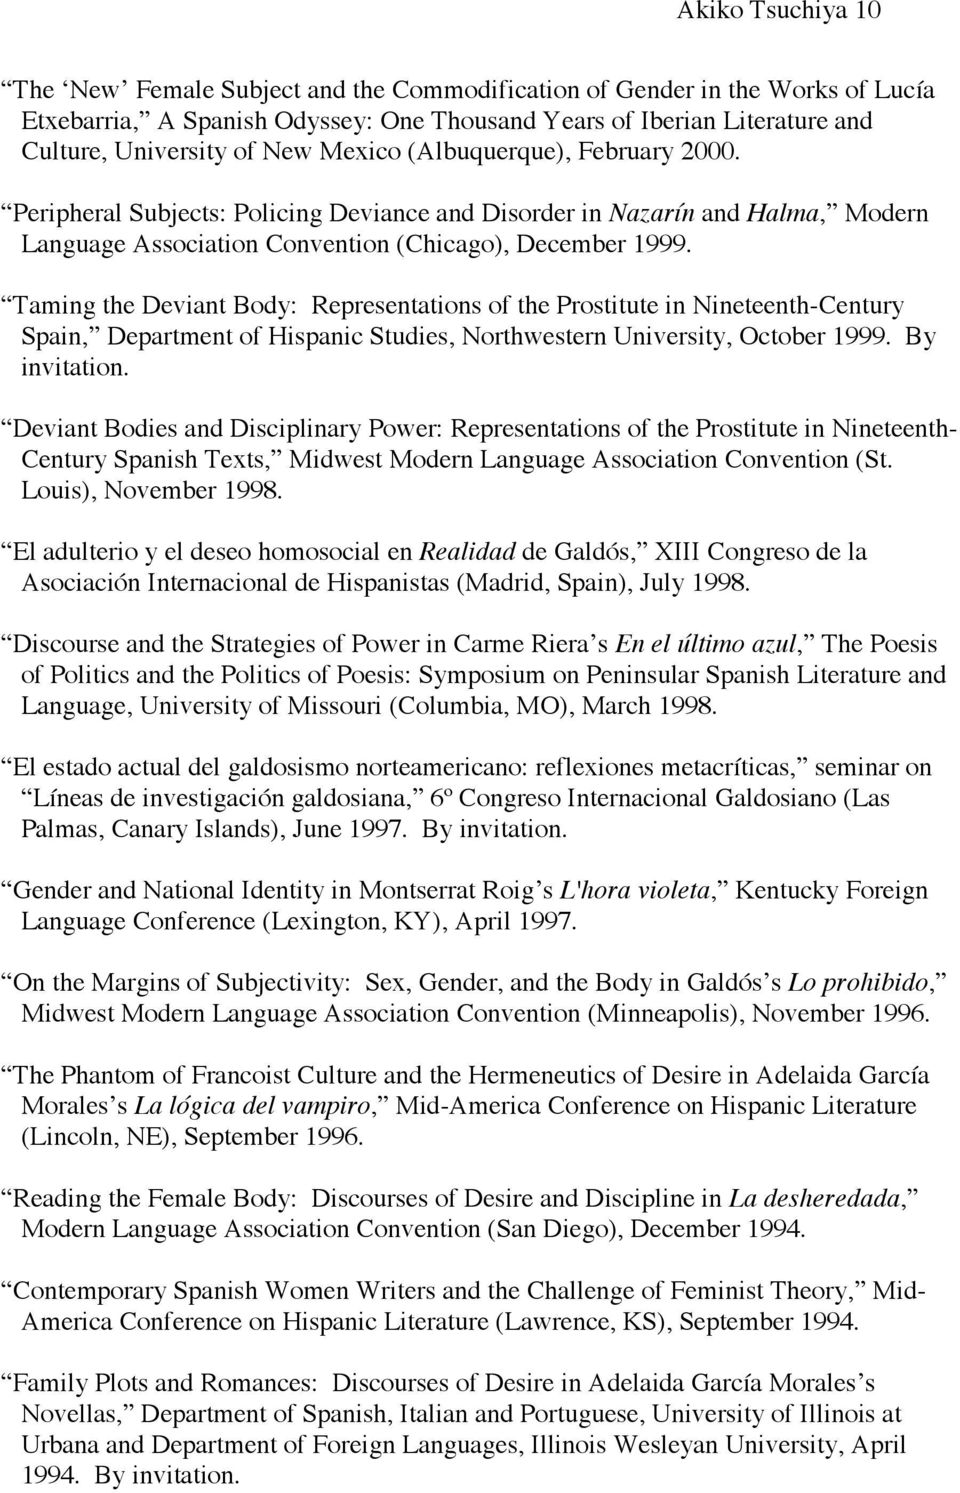 Taming the Deviant Body: Representations of the Prostitute in Nineteenth-Century Spain, Department of Hispanic Studies, Northwestern University, October 1999. By invitation.